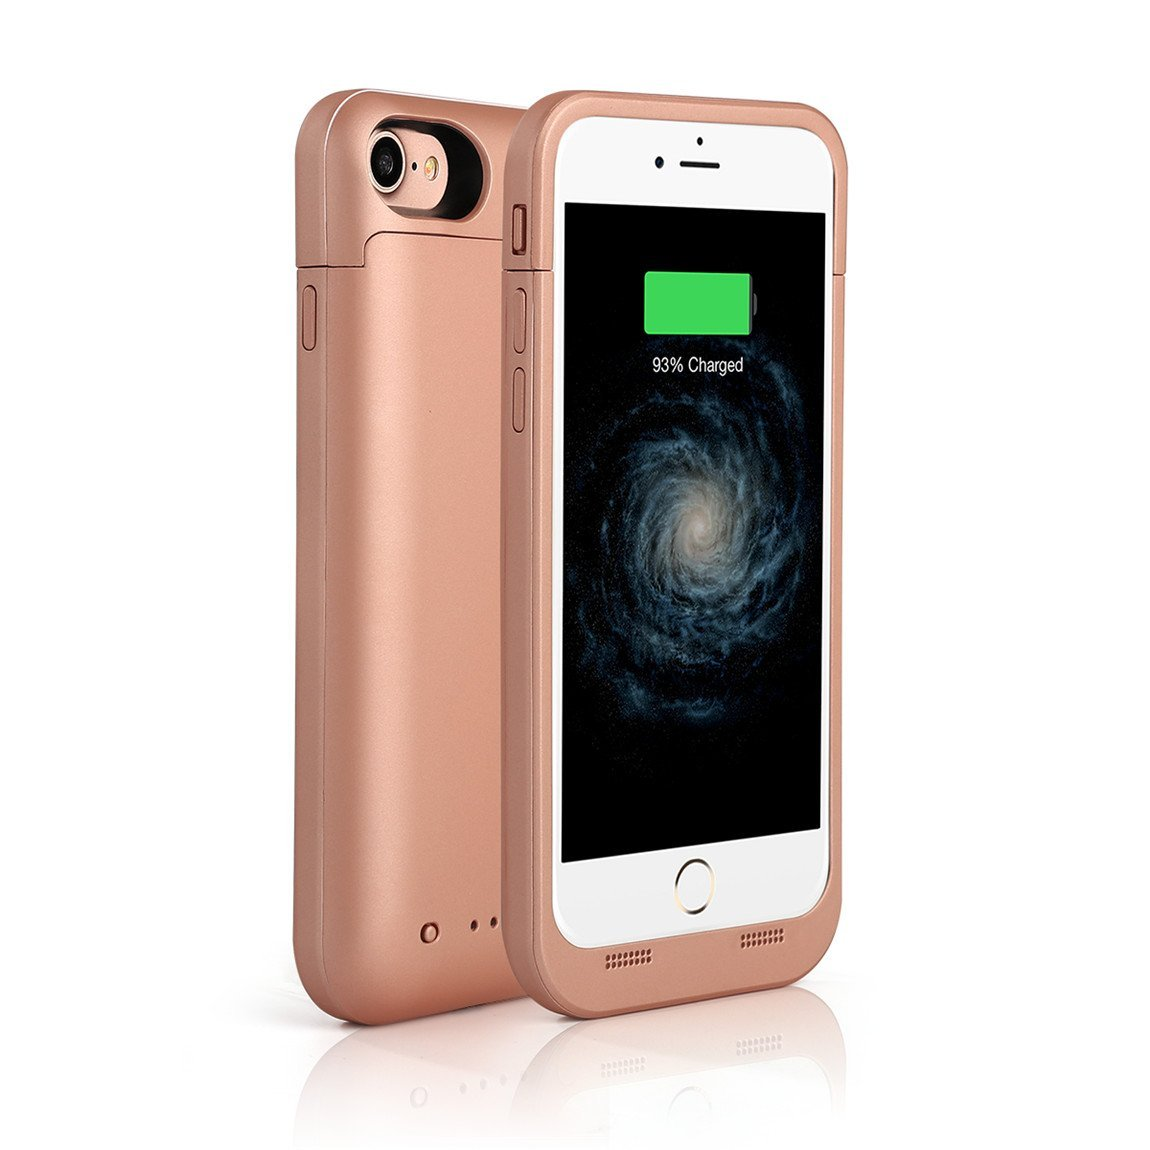 half off edb9f c55e8 Cases :: Other Cases :: 4500mAh Power Bank Battery Case Cover for ...